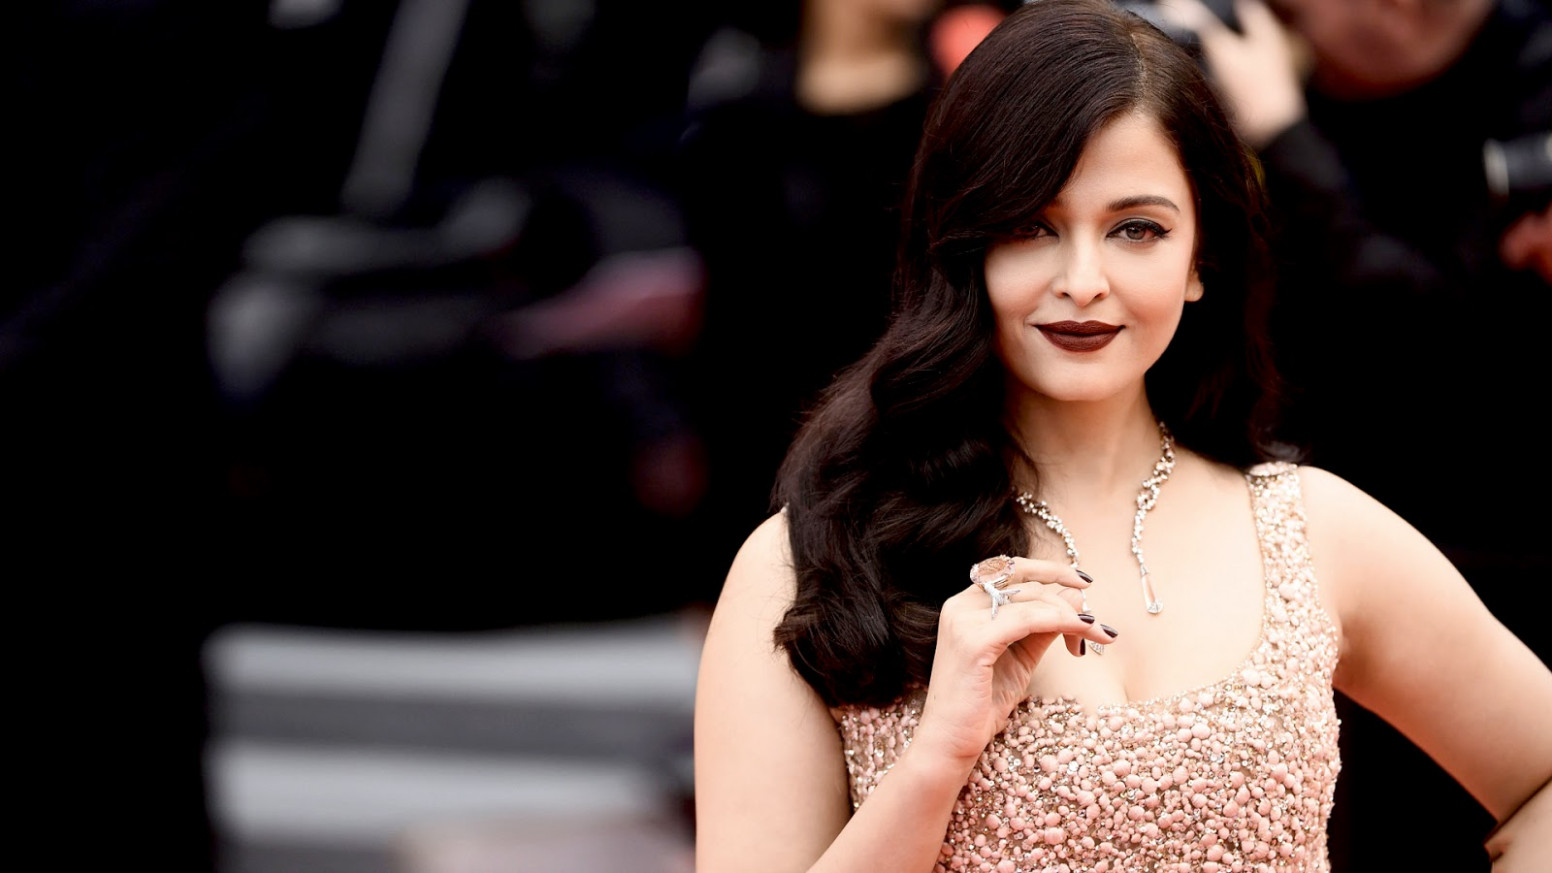 Aishwarya Rai Bachchan Wallpapers HD Download Free 1080p ...